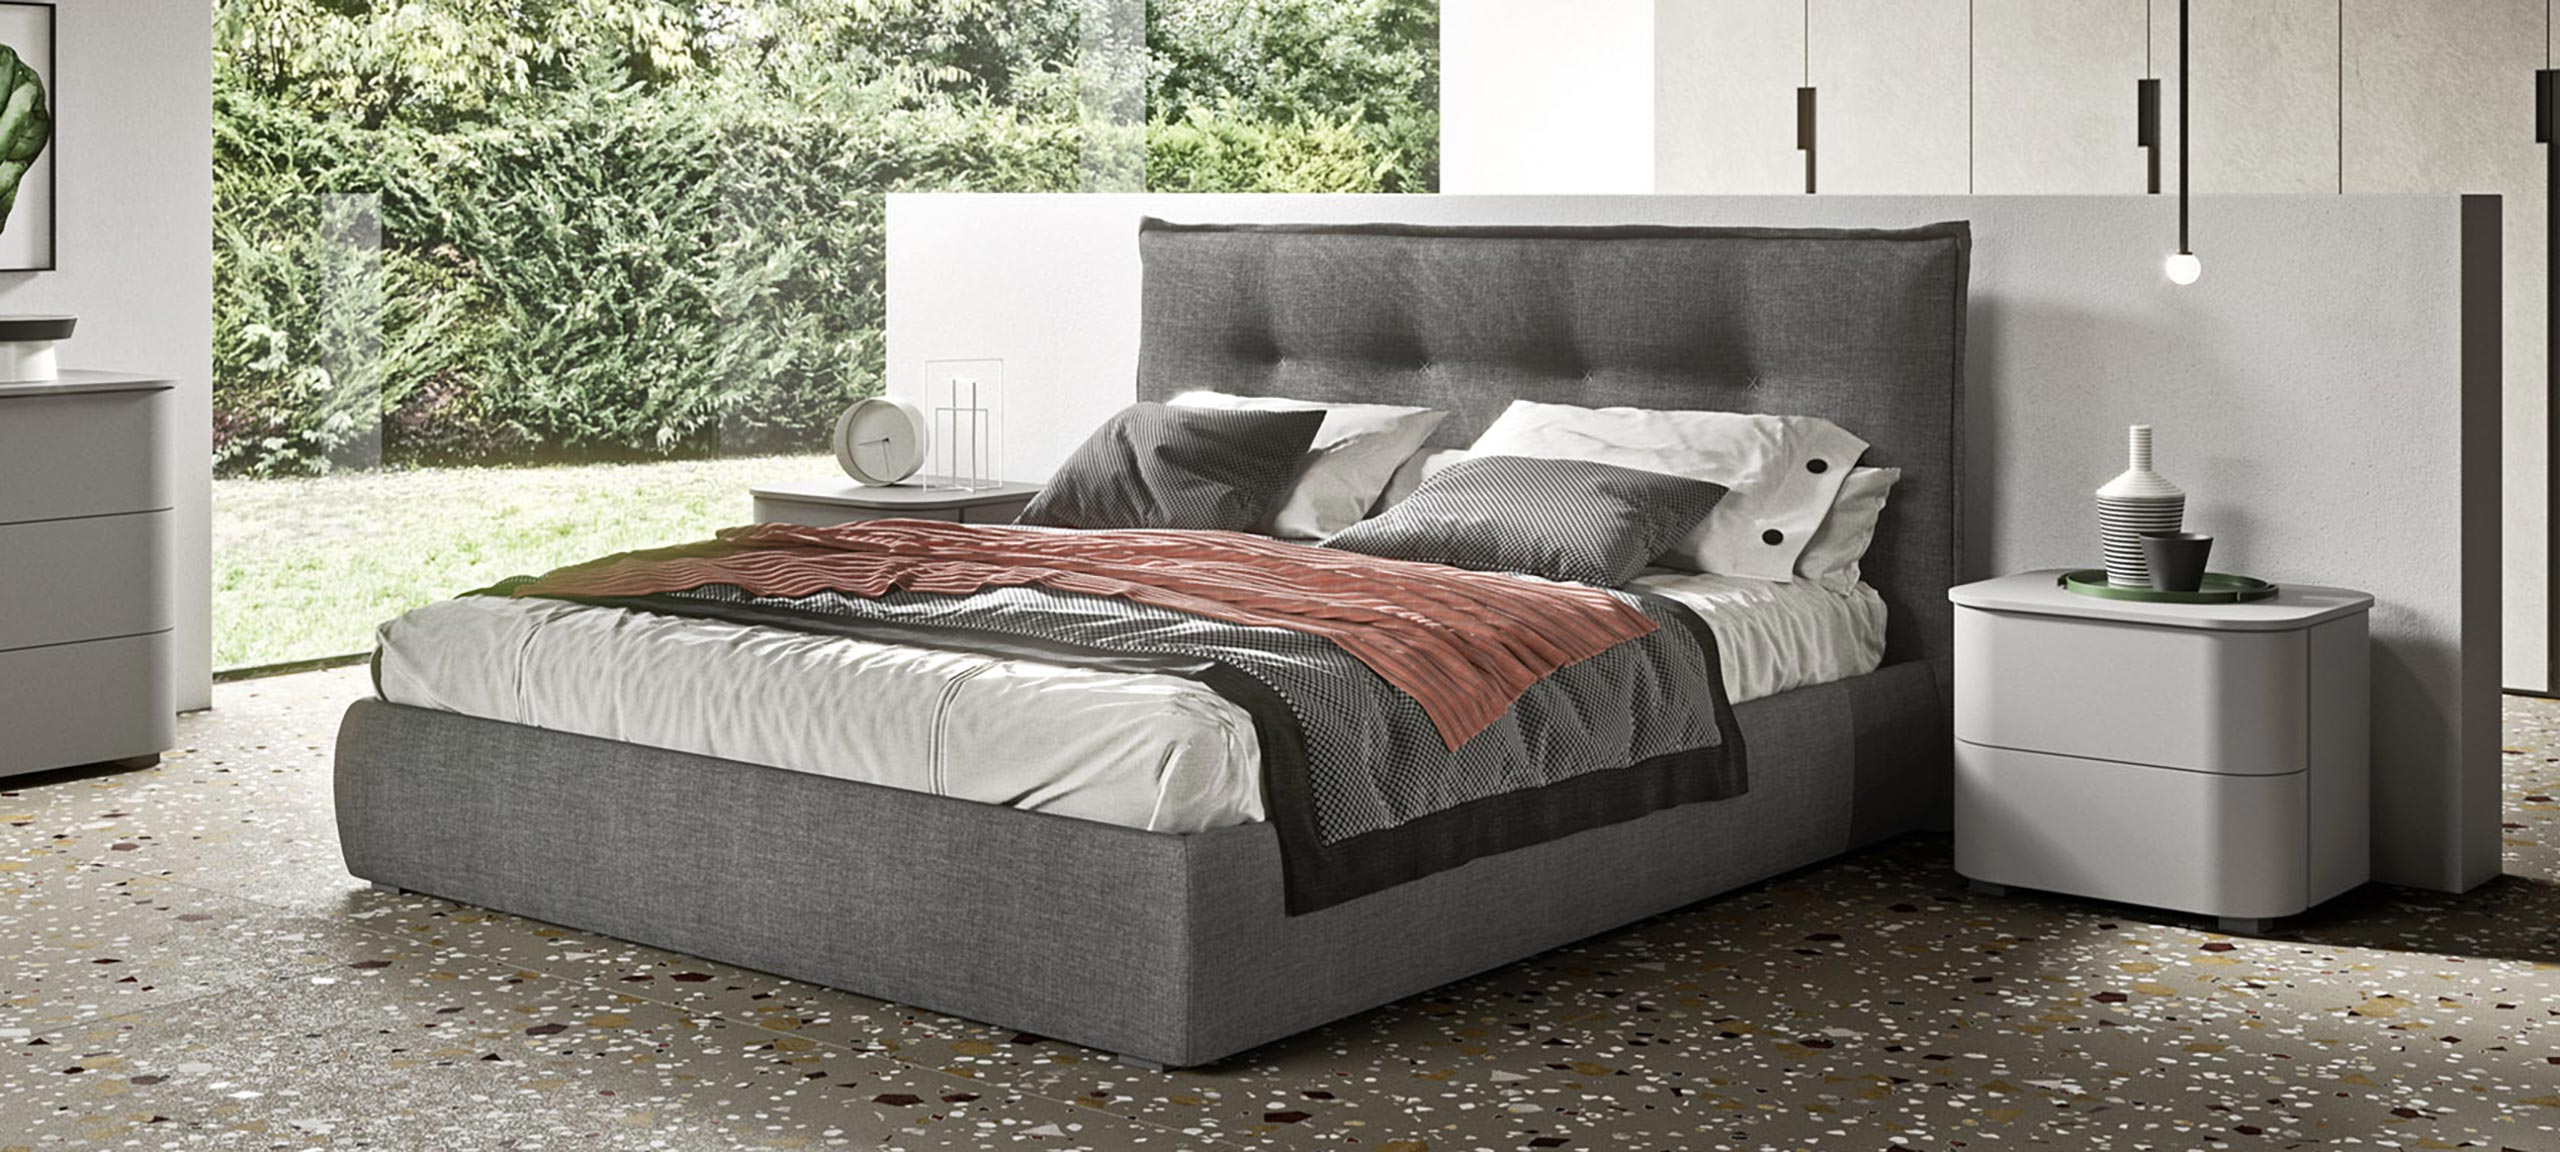 fabric-lined double bed with container 1